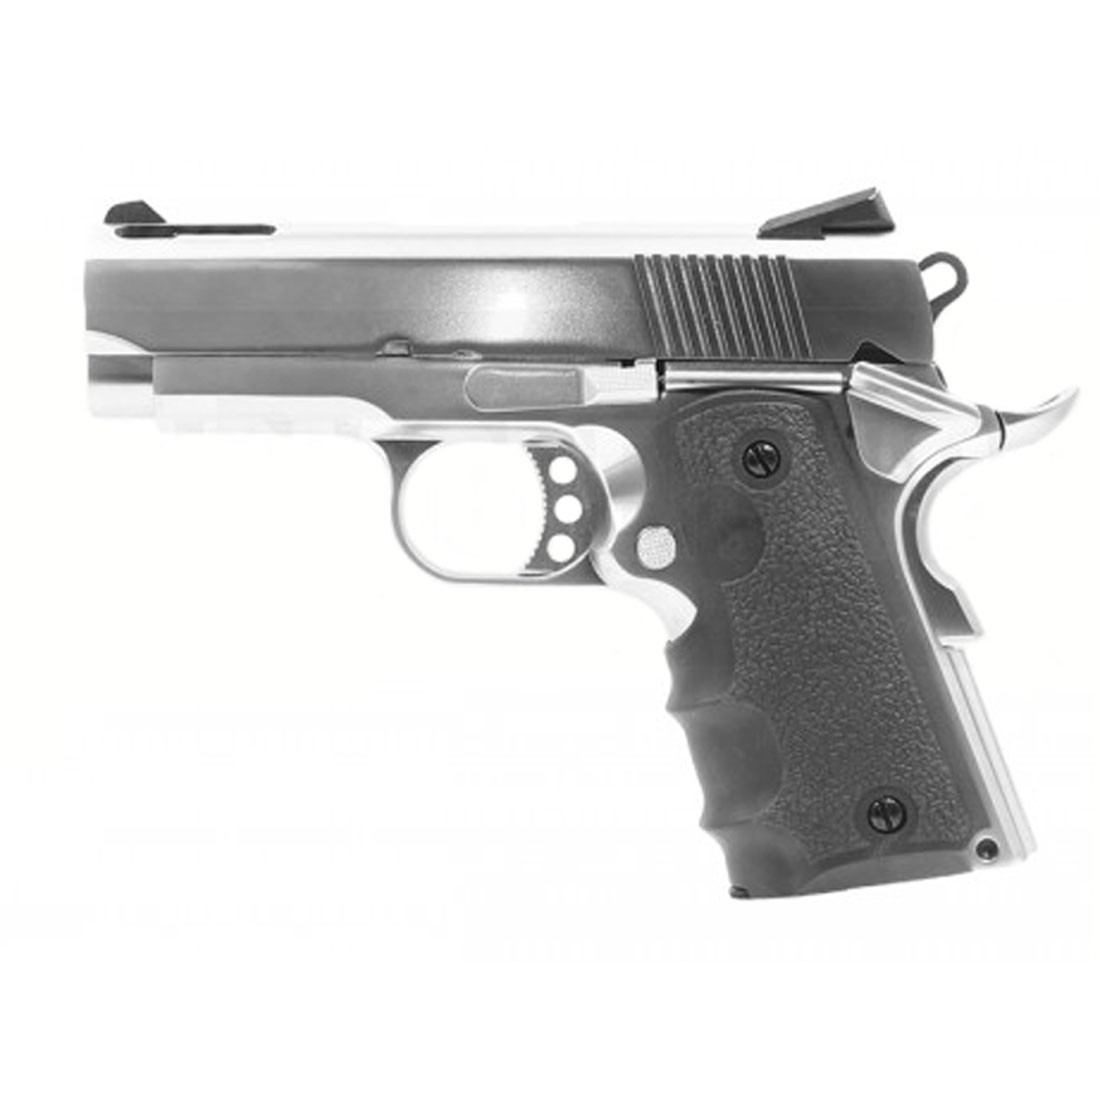 Armorer Works Custom 1911 Compact Gbb Airsoft Pistol Silver